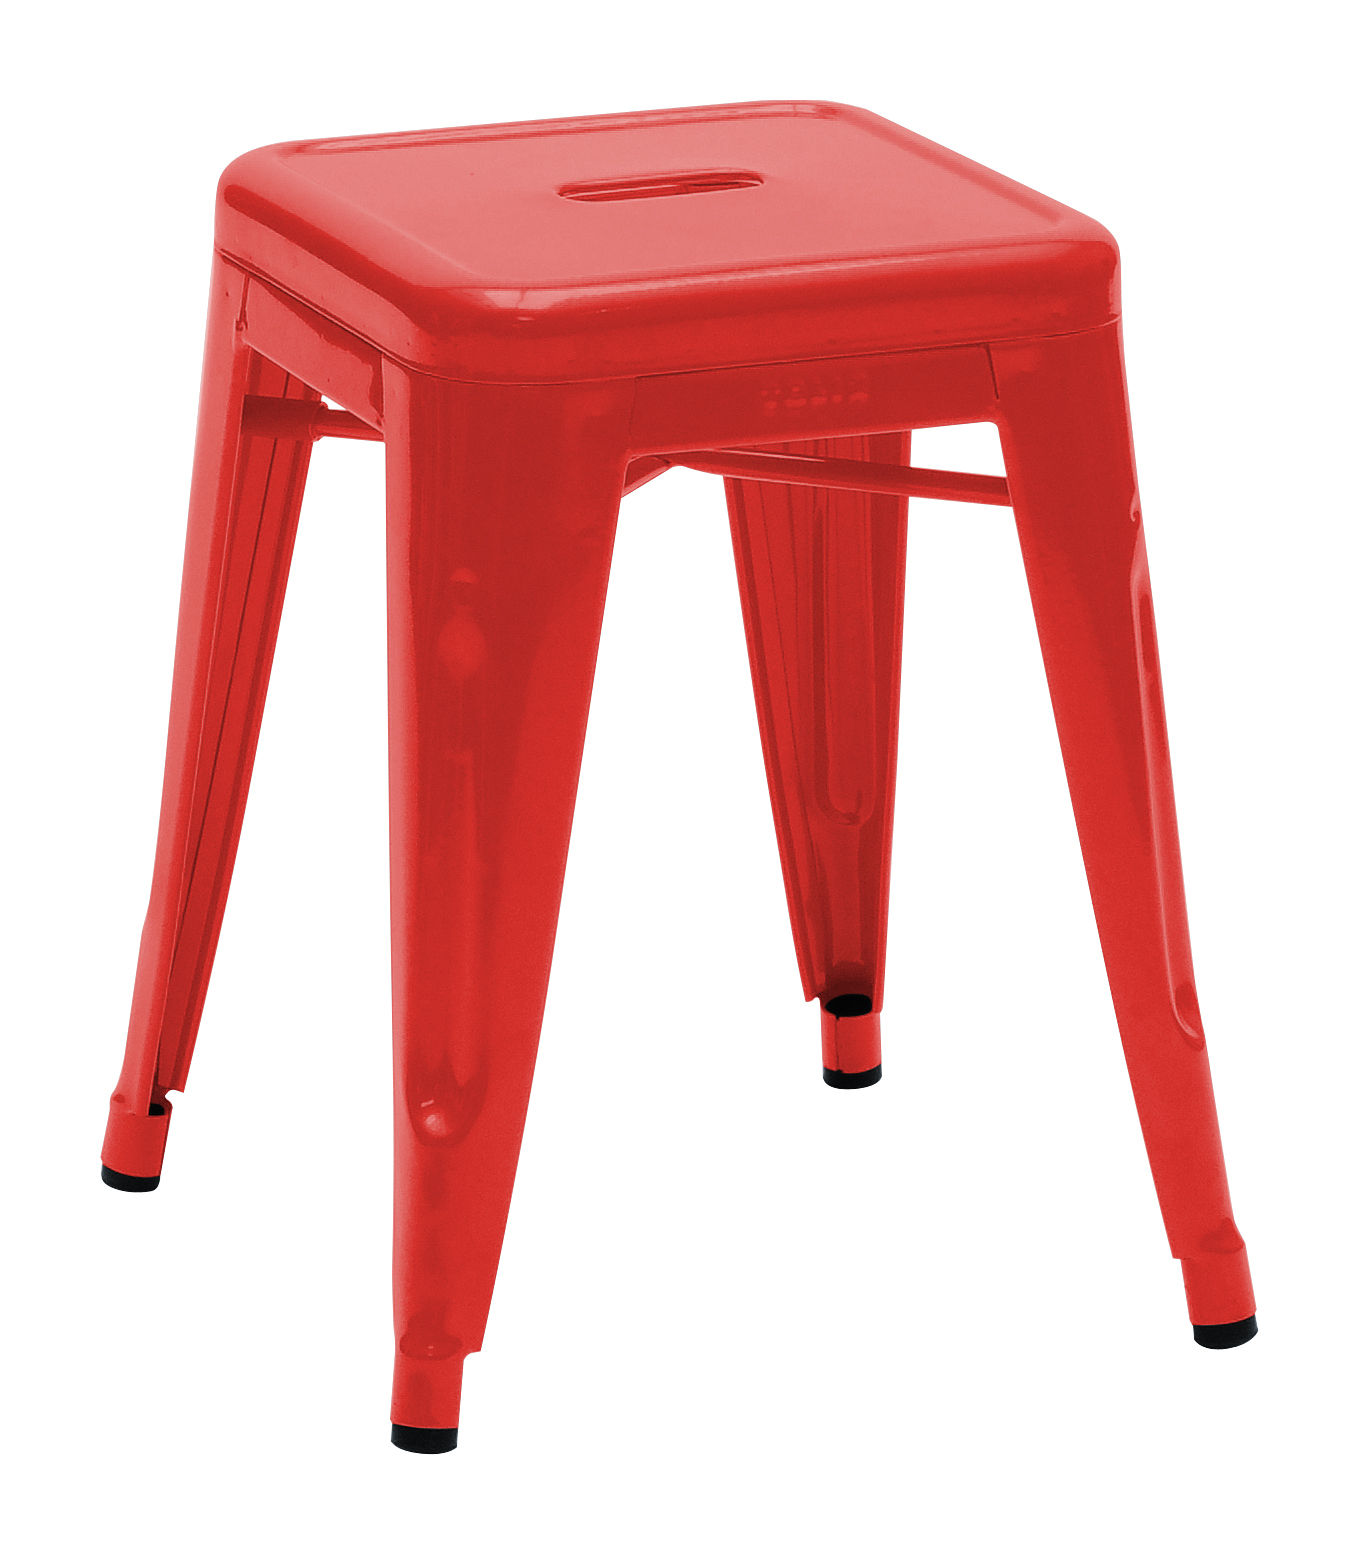 Furniture - Stools - H Stackable stool - Lacquered steel - H 45 cm by Tolix - Red - Lacquered recycled steel